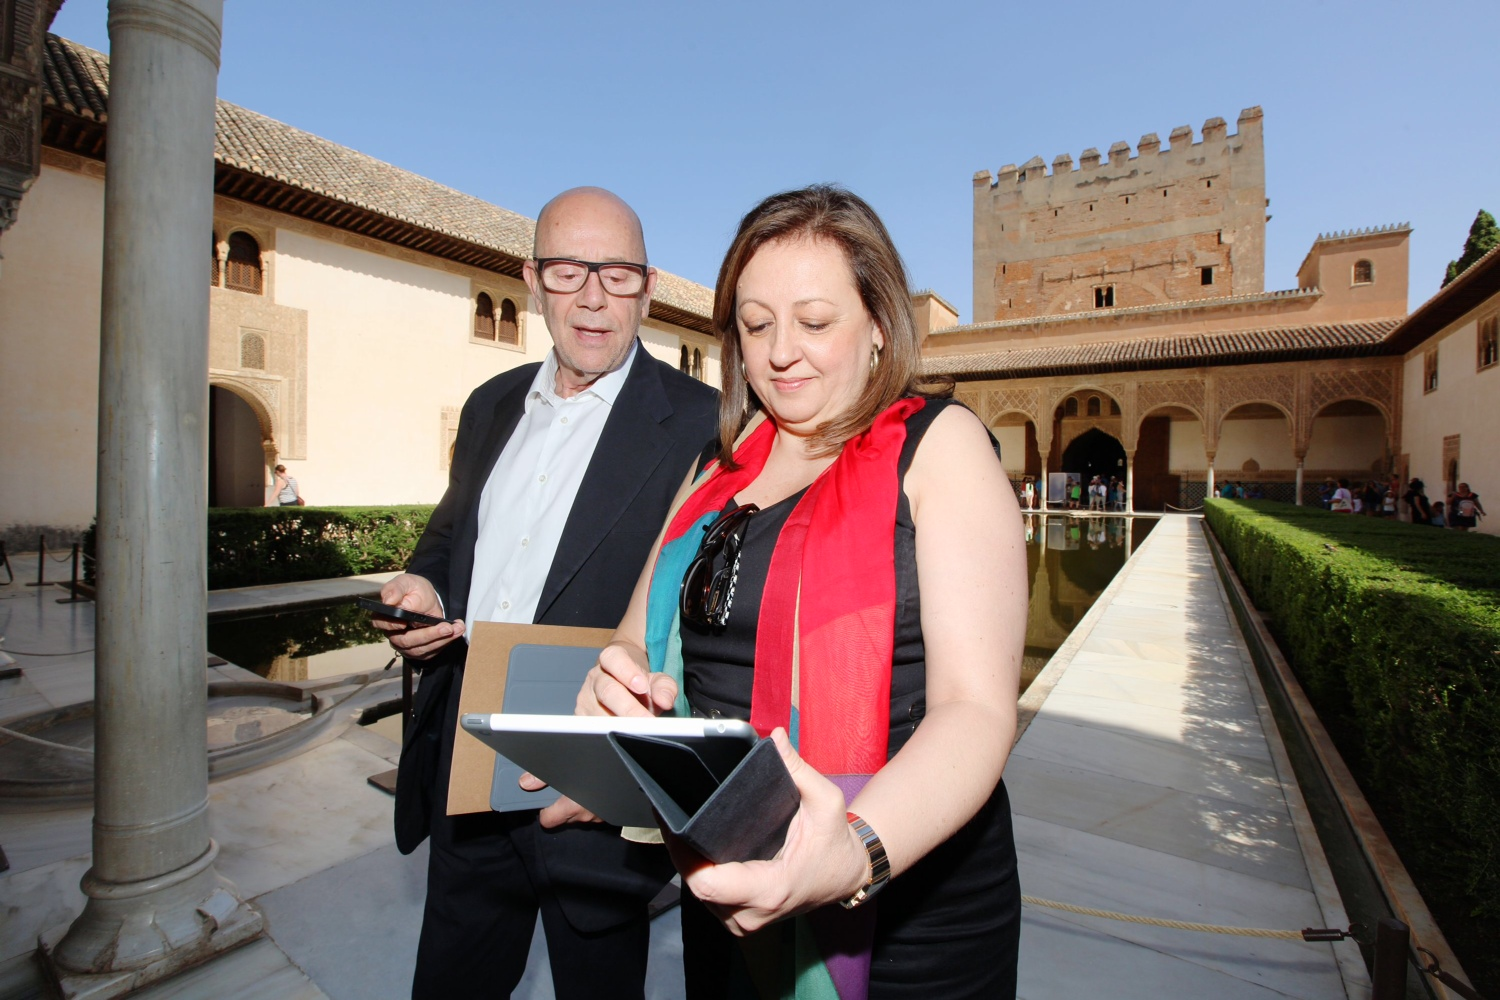 The app version of the Official Guide to the Alhambra